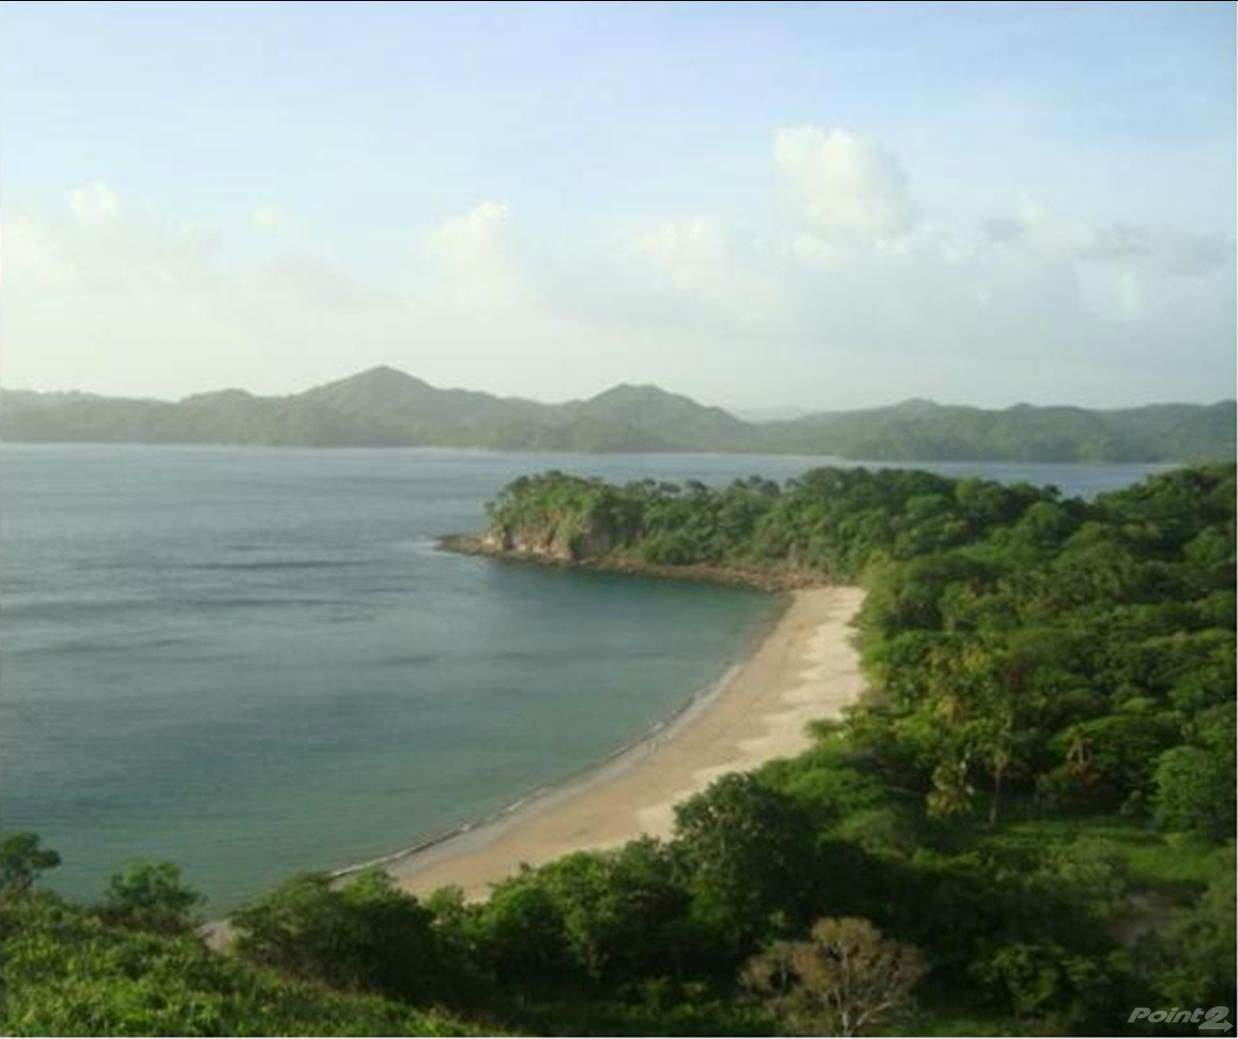 Locales y oficinas en venta Cuajiniquil, Costa Rica Titled 6,000 Acres Beachfront Land in Guanacaste